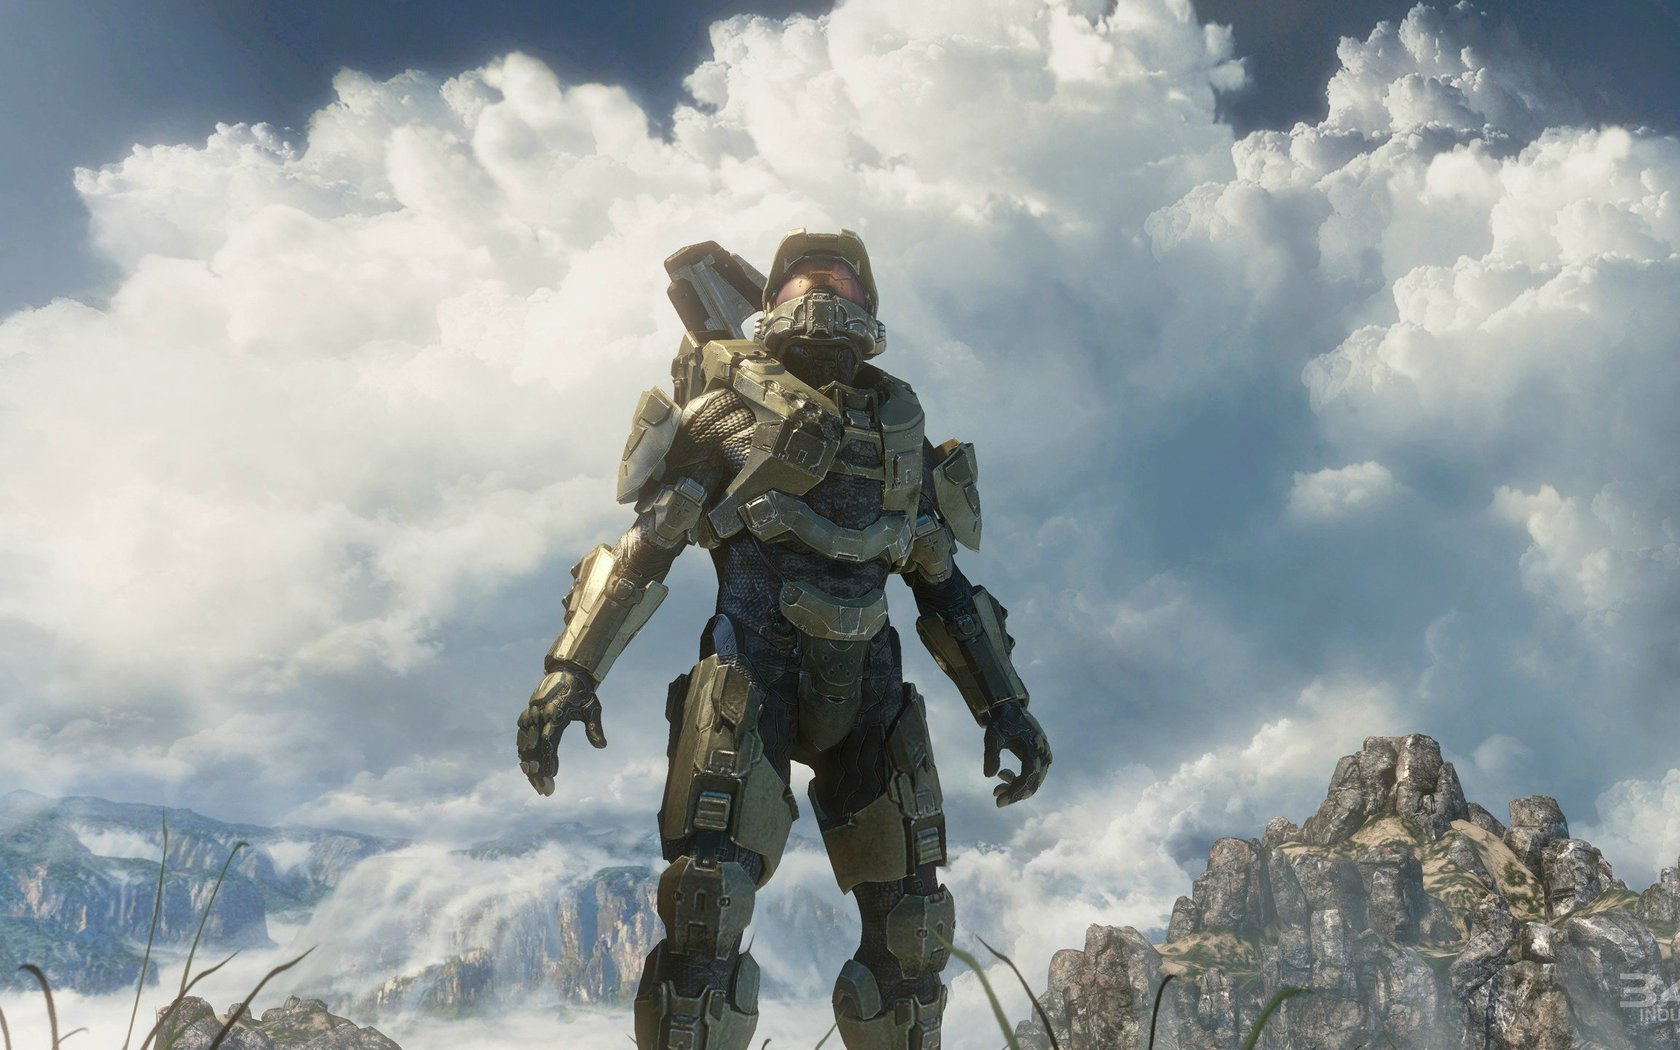 Halo 4 Wallpaper 6481 Hd Wallpapers in Games   Imagescicom 1680x1050